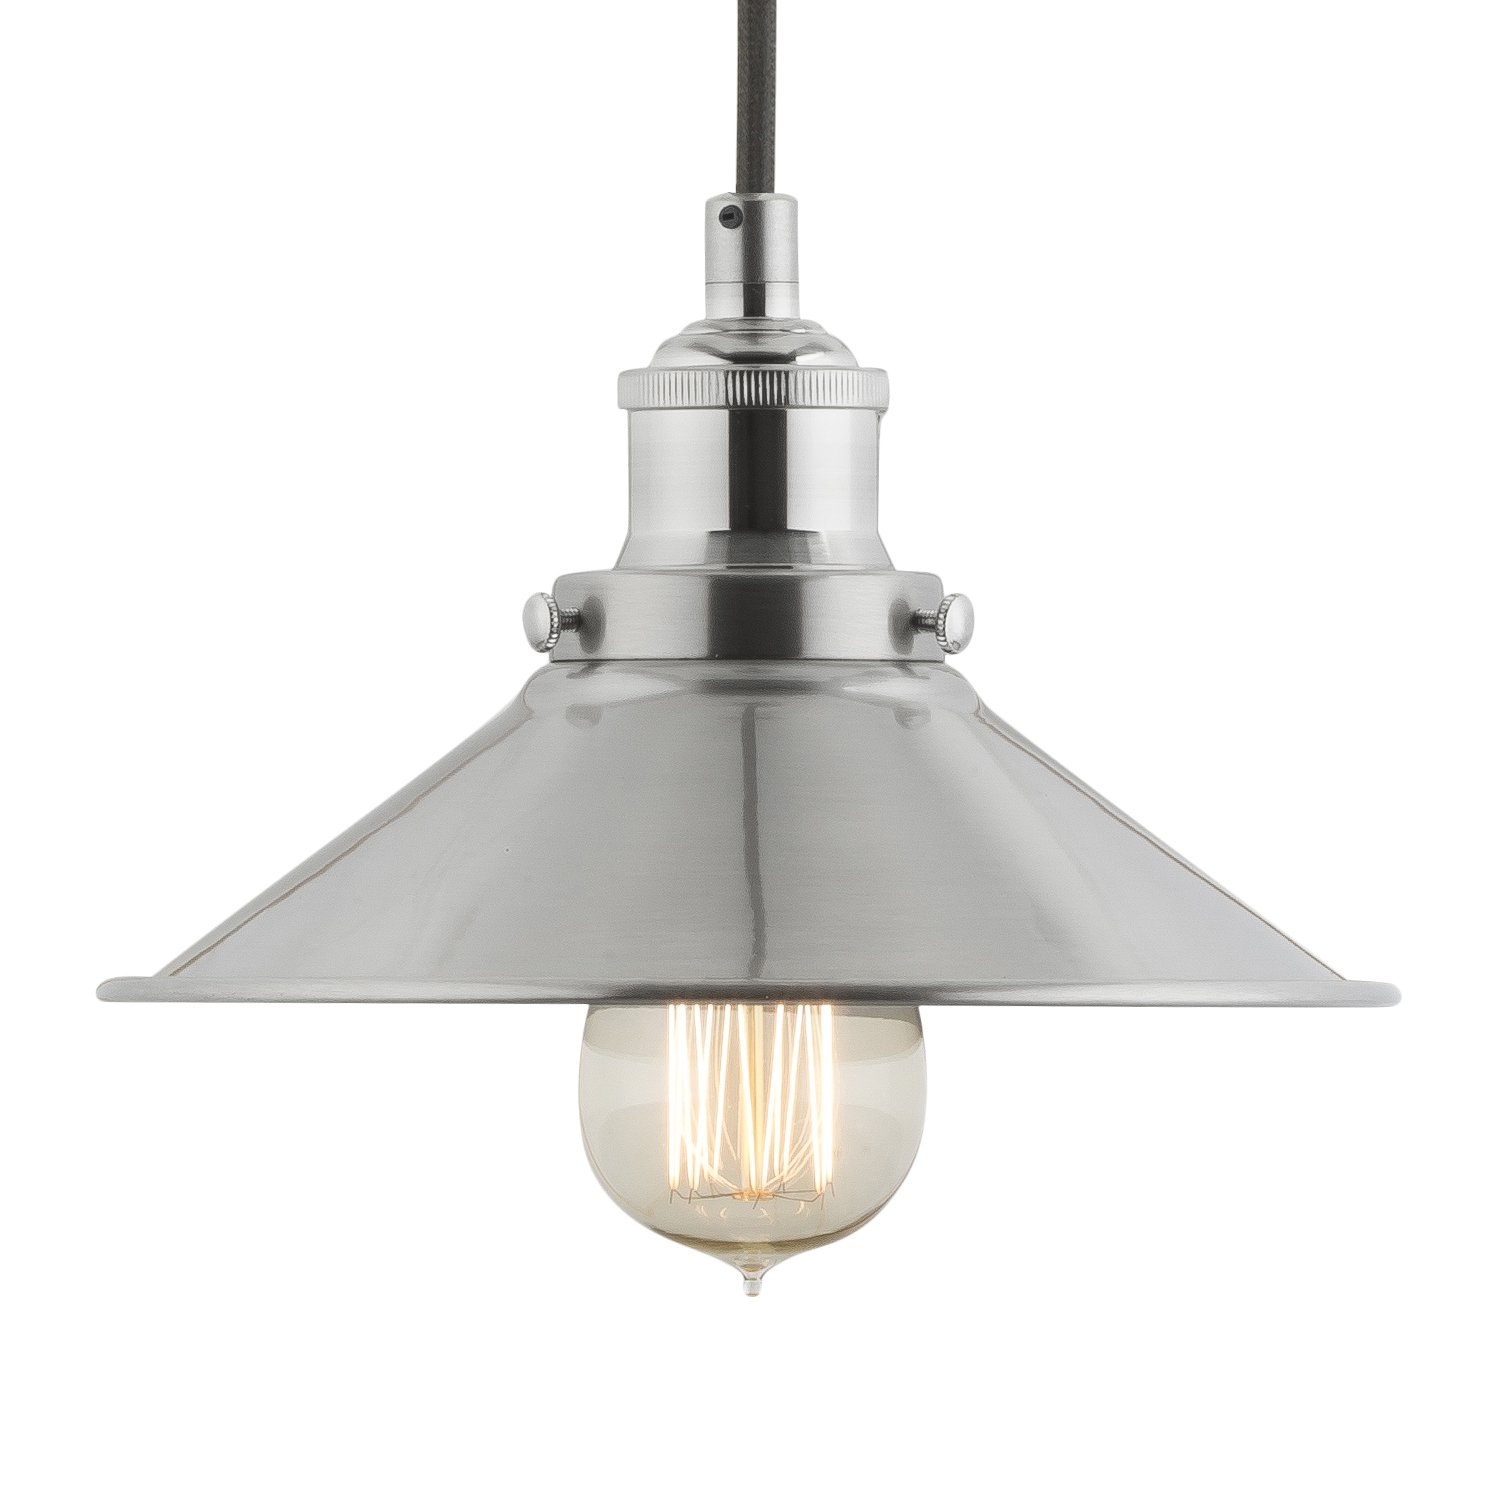 BFXQY industrial kitchen light fixtures Linea di Liara Andante Industrial Factory Pendant Lamp Brushed Nickel One Light Fixture with Metal Shade Fabric Wrapped Cord Exposed Hardware 5 Inch